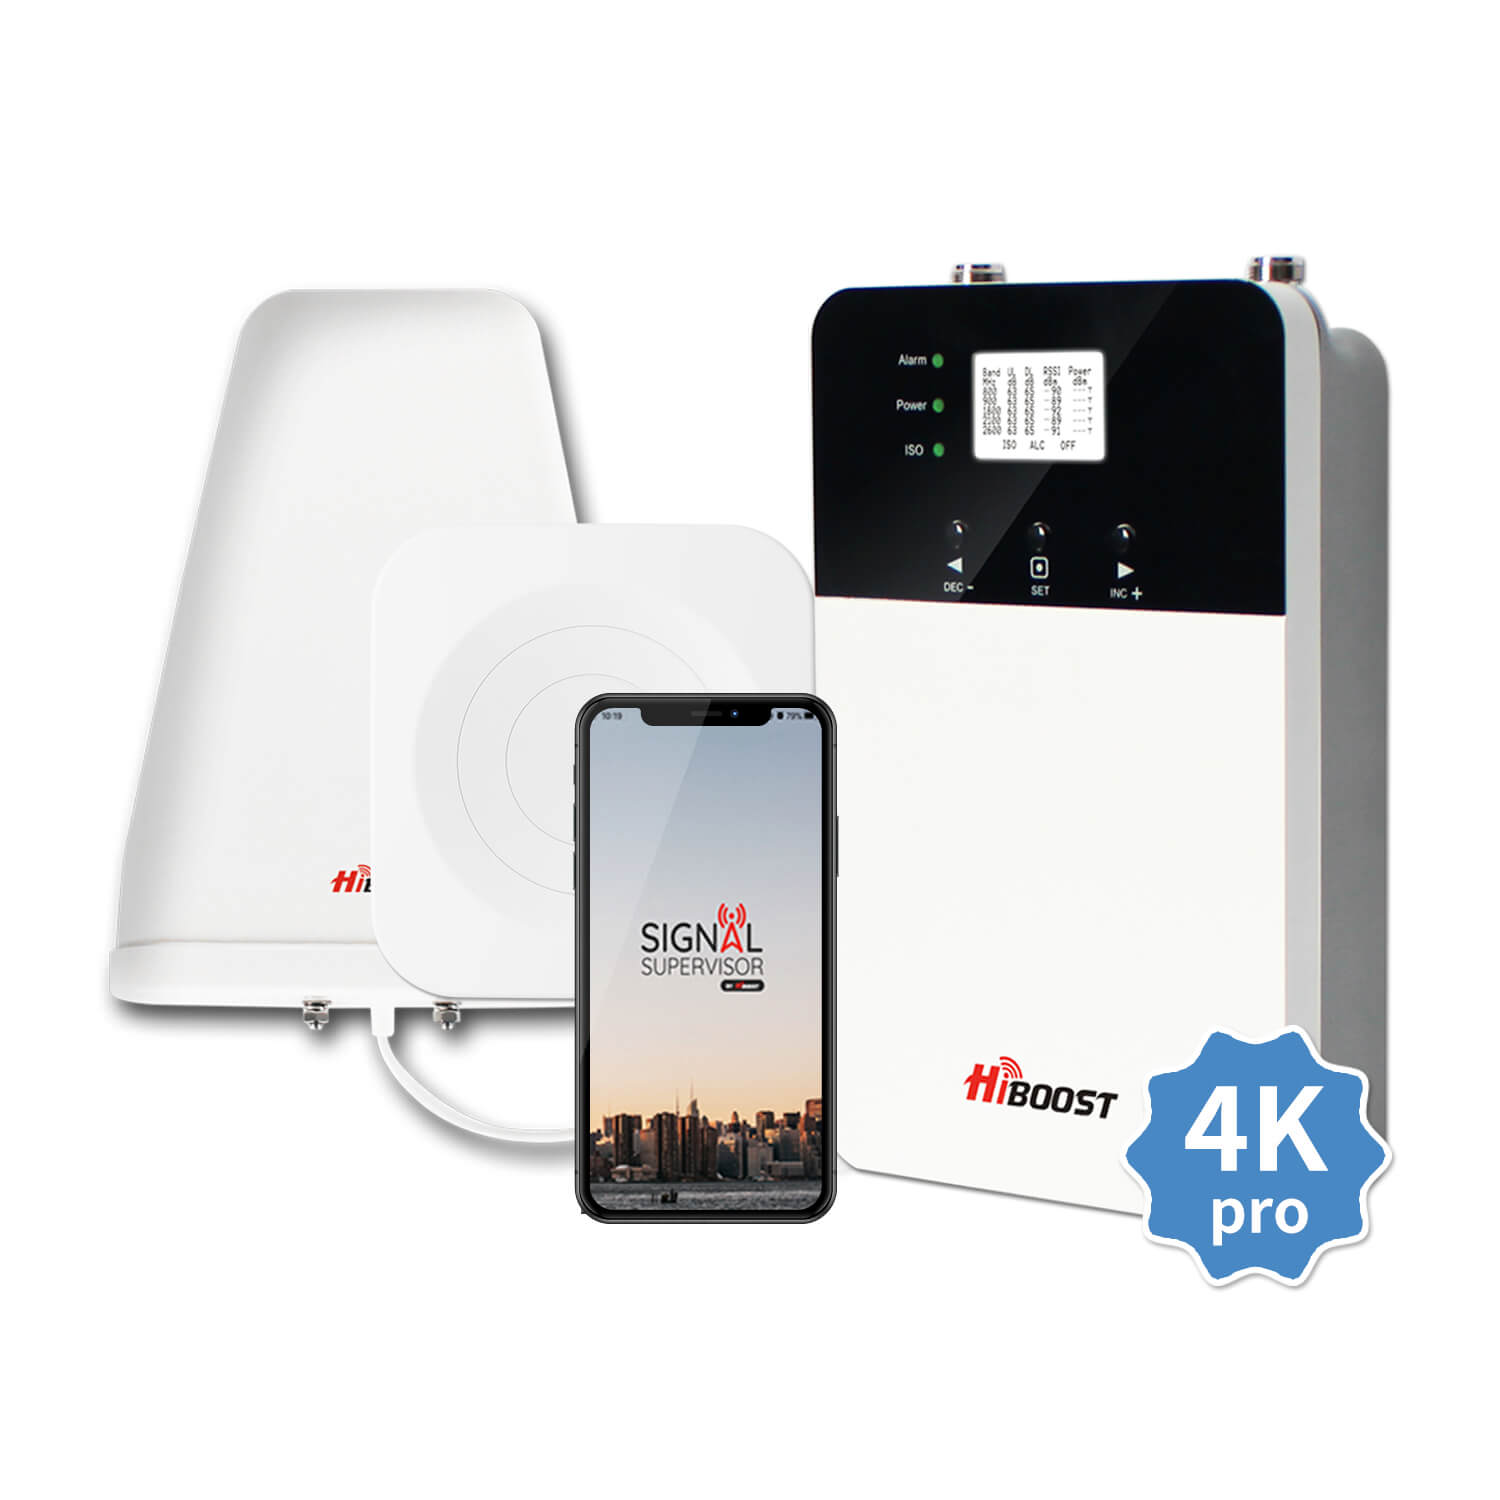 HiBoost-4K-Plus-Pro-Cell-Phone-Signal-Booster-1